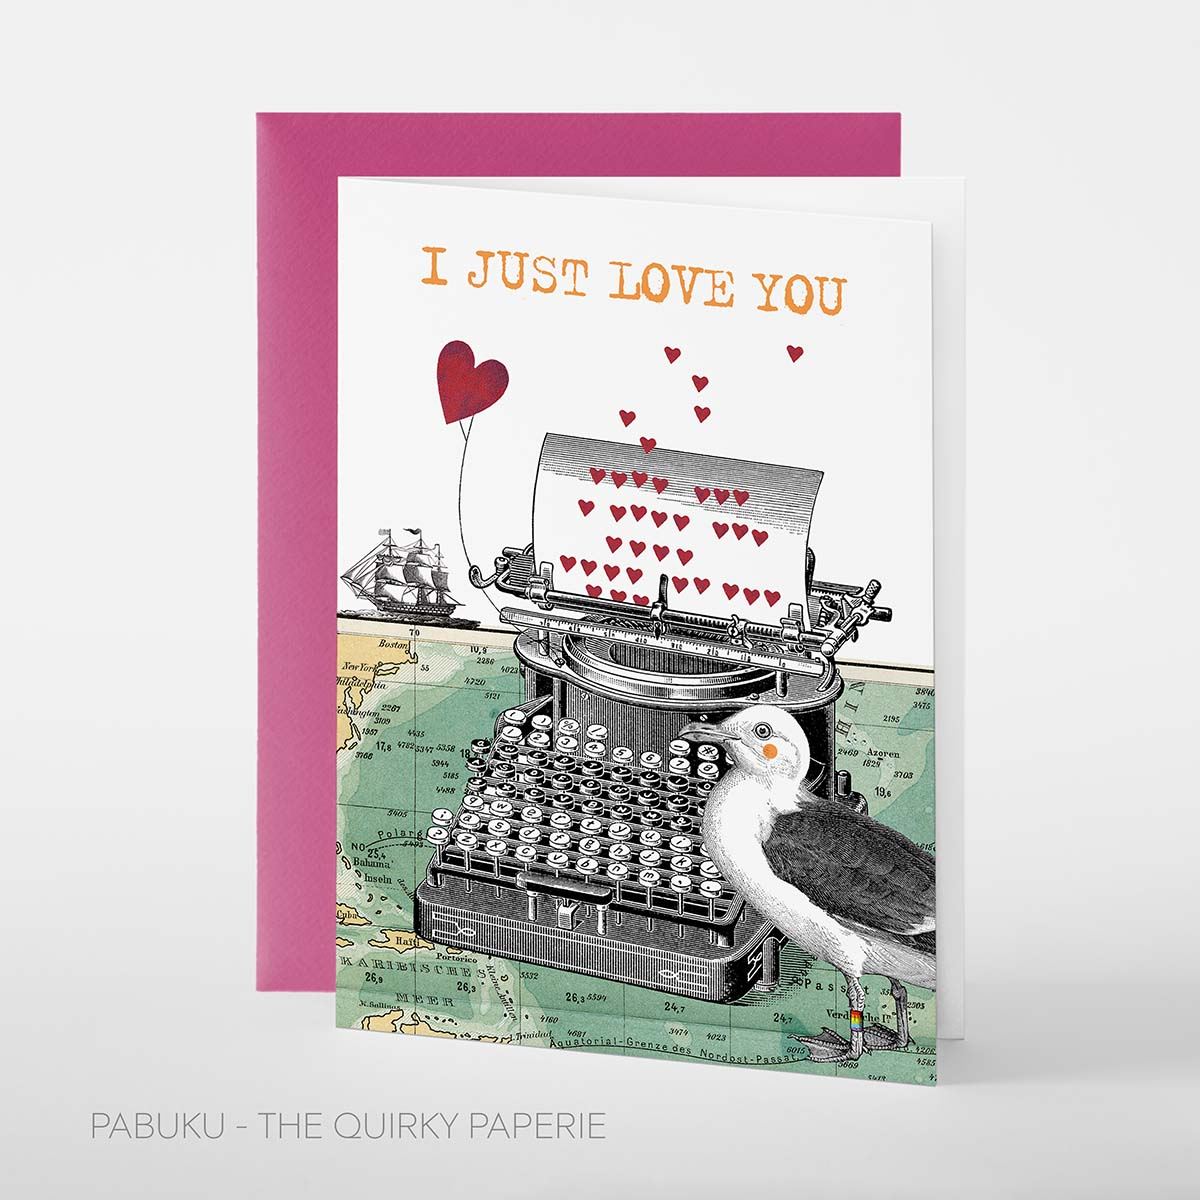 I Just Love You Card, Pabuku